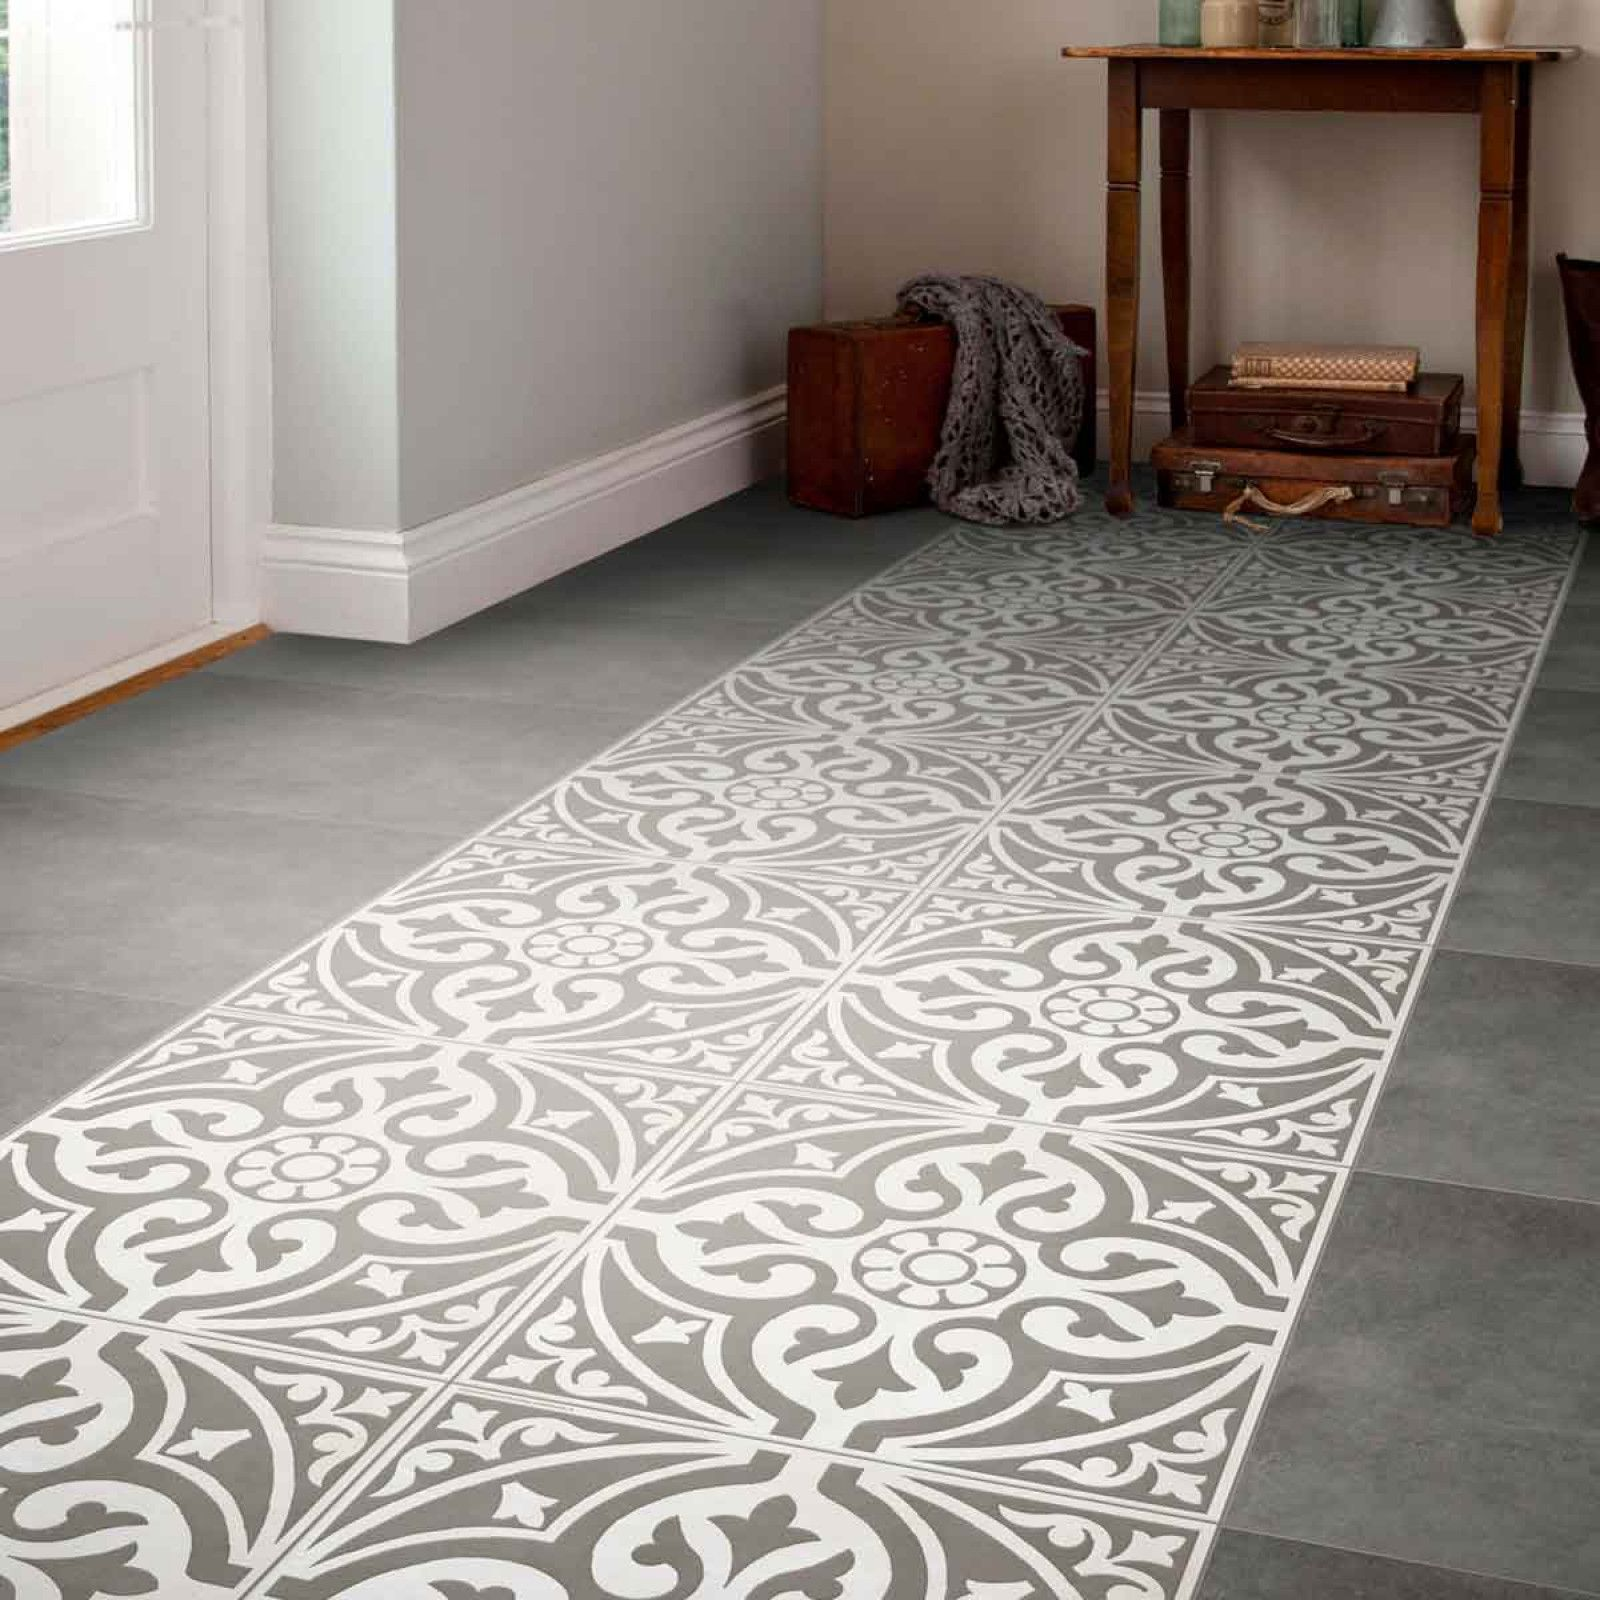 A traditional looking grey patterned feature floor tile designed a traditional looking grey patterned feature floor tile designed with a subtle stone effect for added dailygadgetfo Choice Image